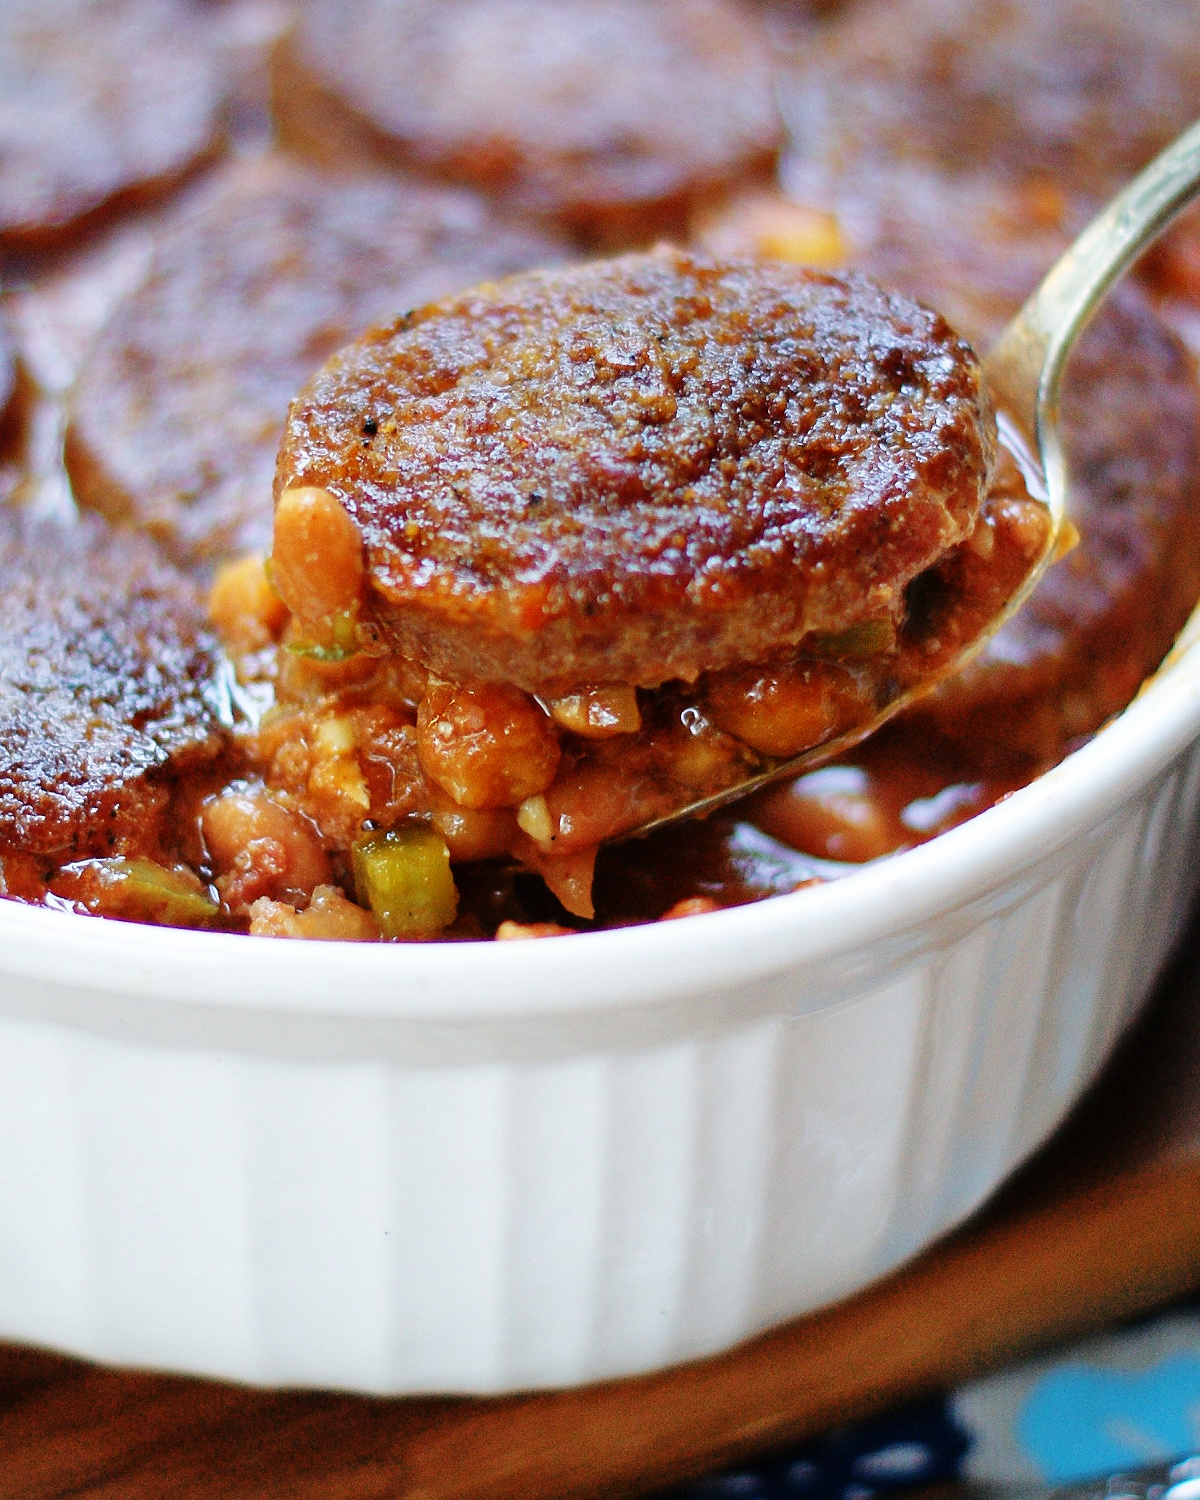 Baked beans with sausage patties on top being served